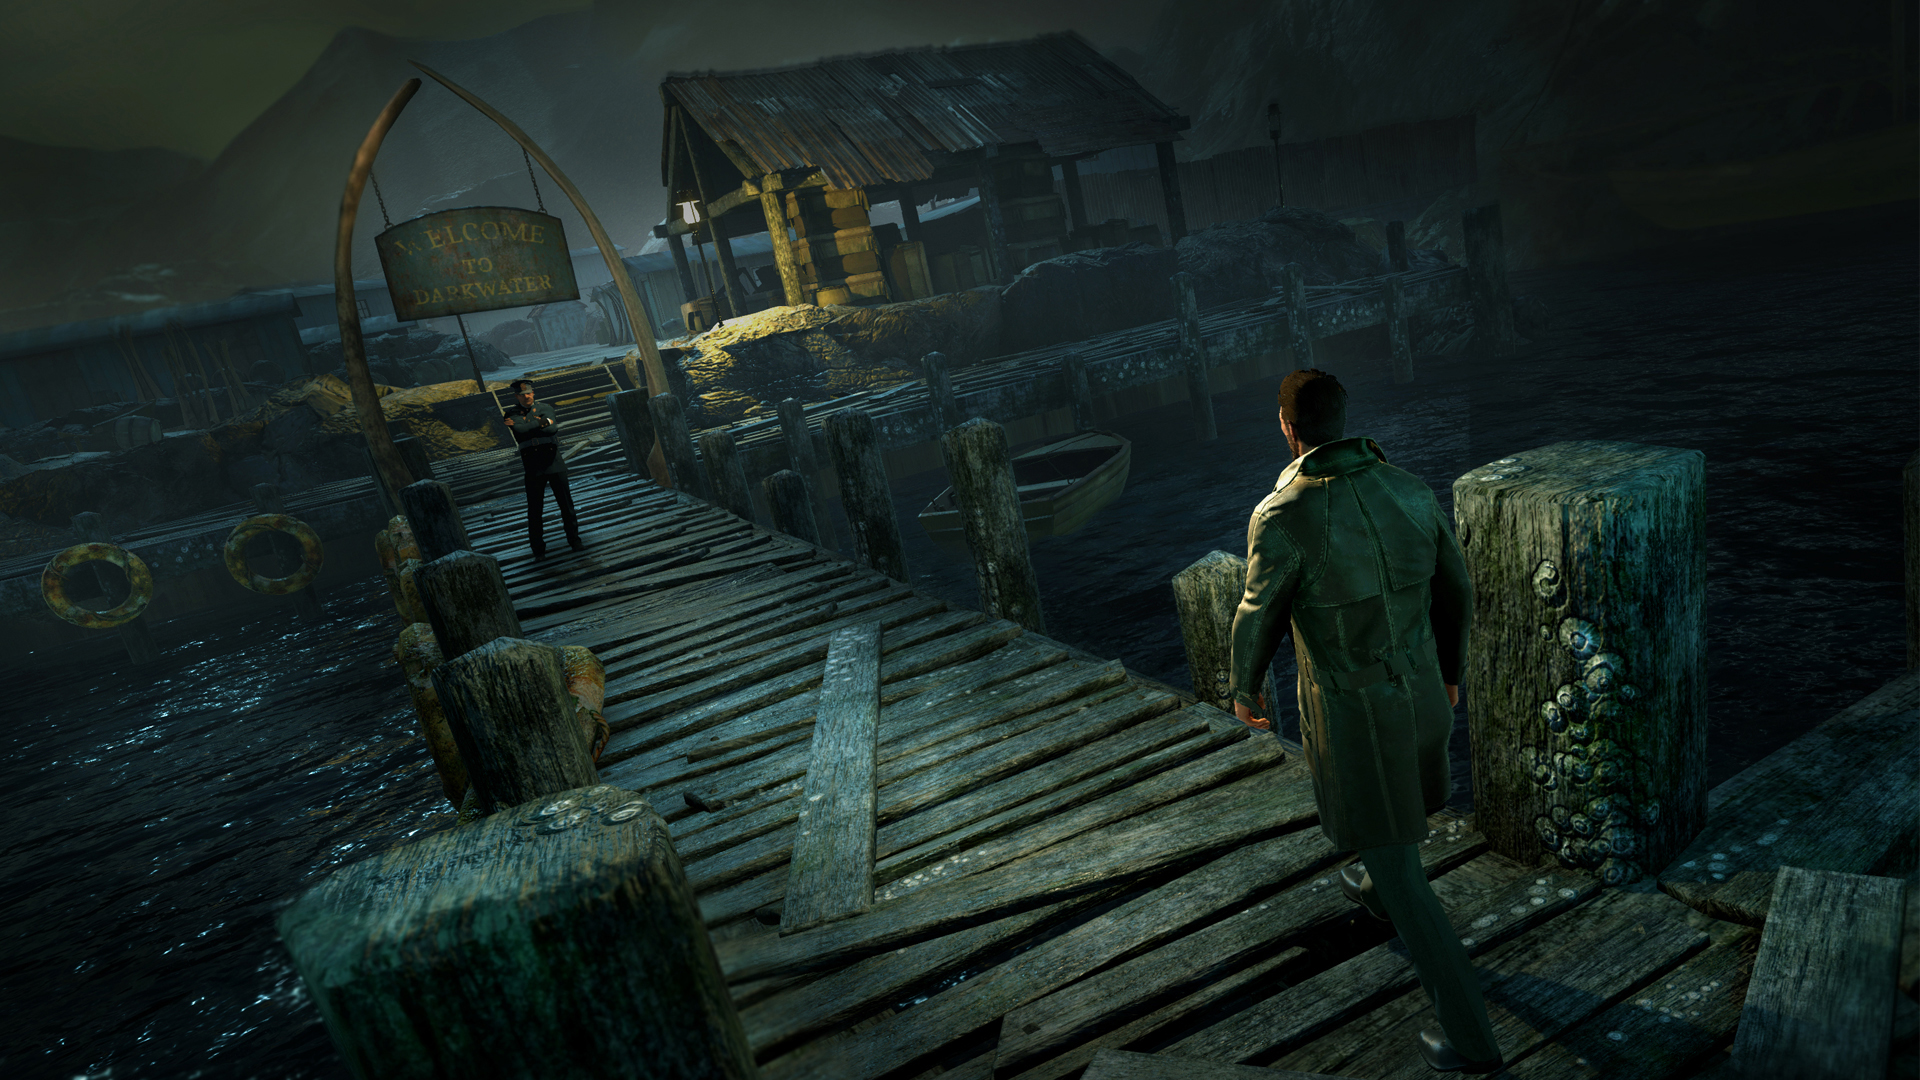 E3 Preview - Call of Cthulhu (PC)